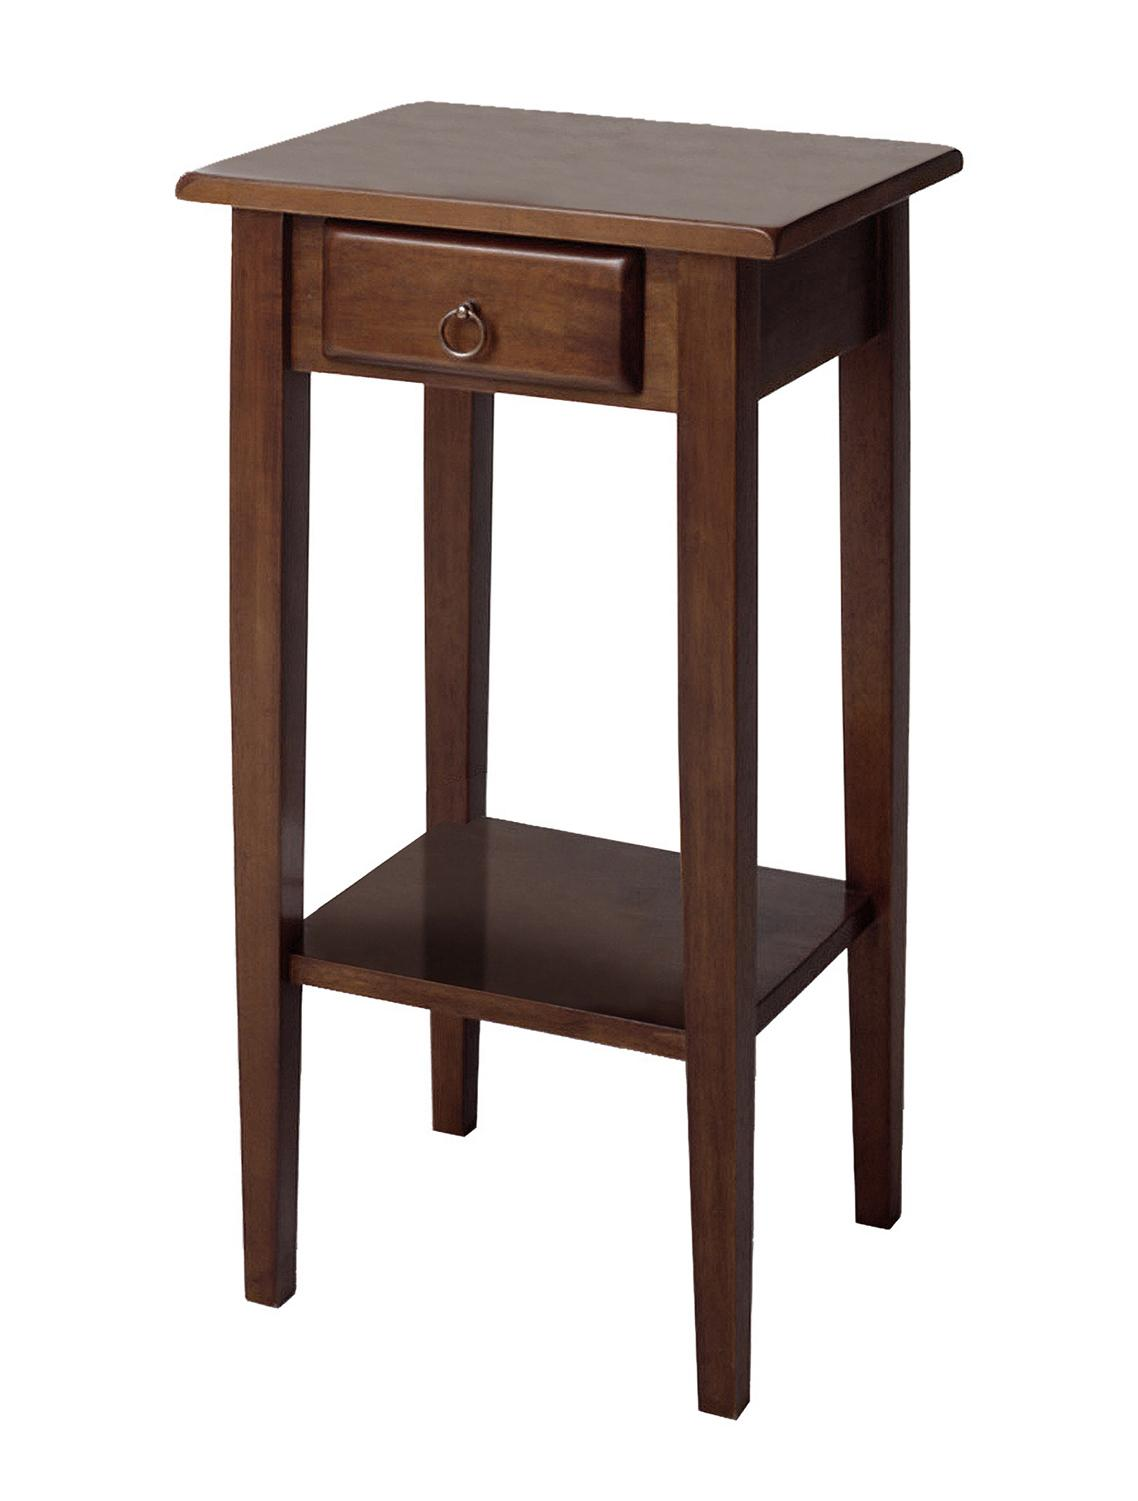 winsome regalia accent table with drawer shelf home goods round drawers concrete coffee oriental lamps butcher block kitchen outdoor and chair set patio swing flannel backed vinyl